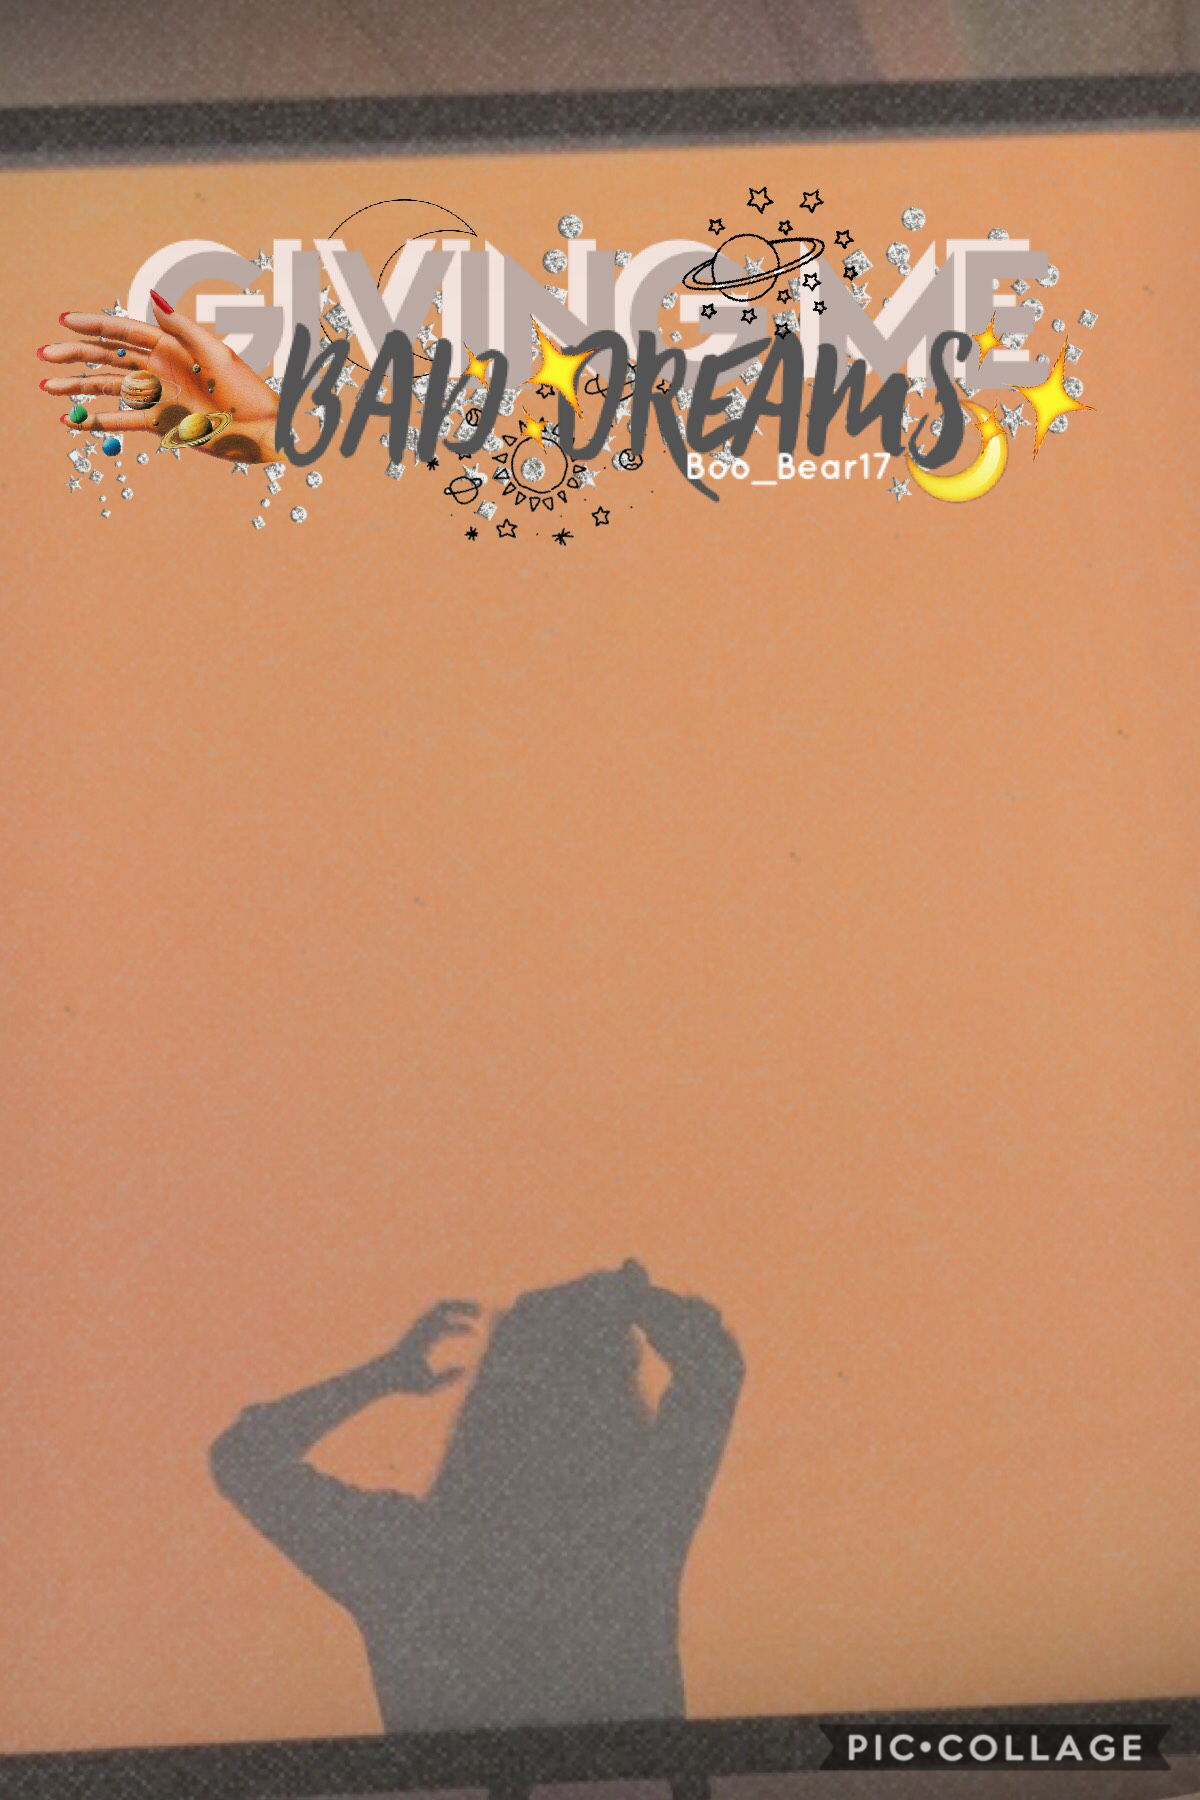 ✨giving me bad dreams✨ •idk if I like this edit but oh well, I liked the idea of it I guess •song recommendation: L$D by A$AP Rocky